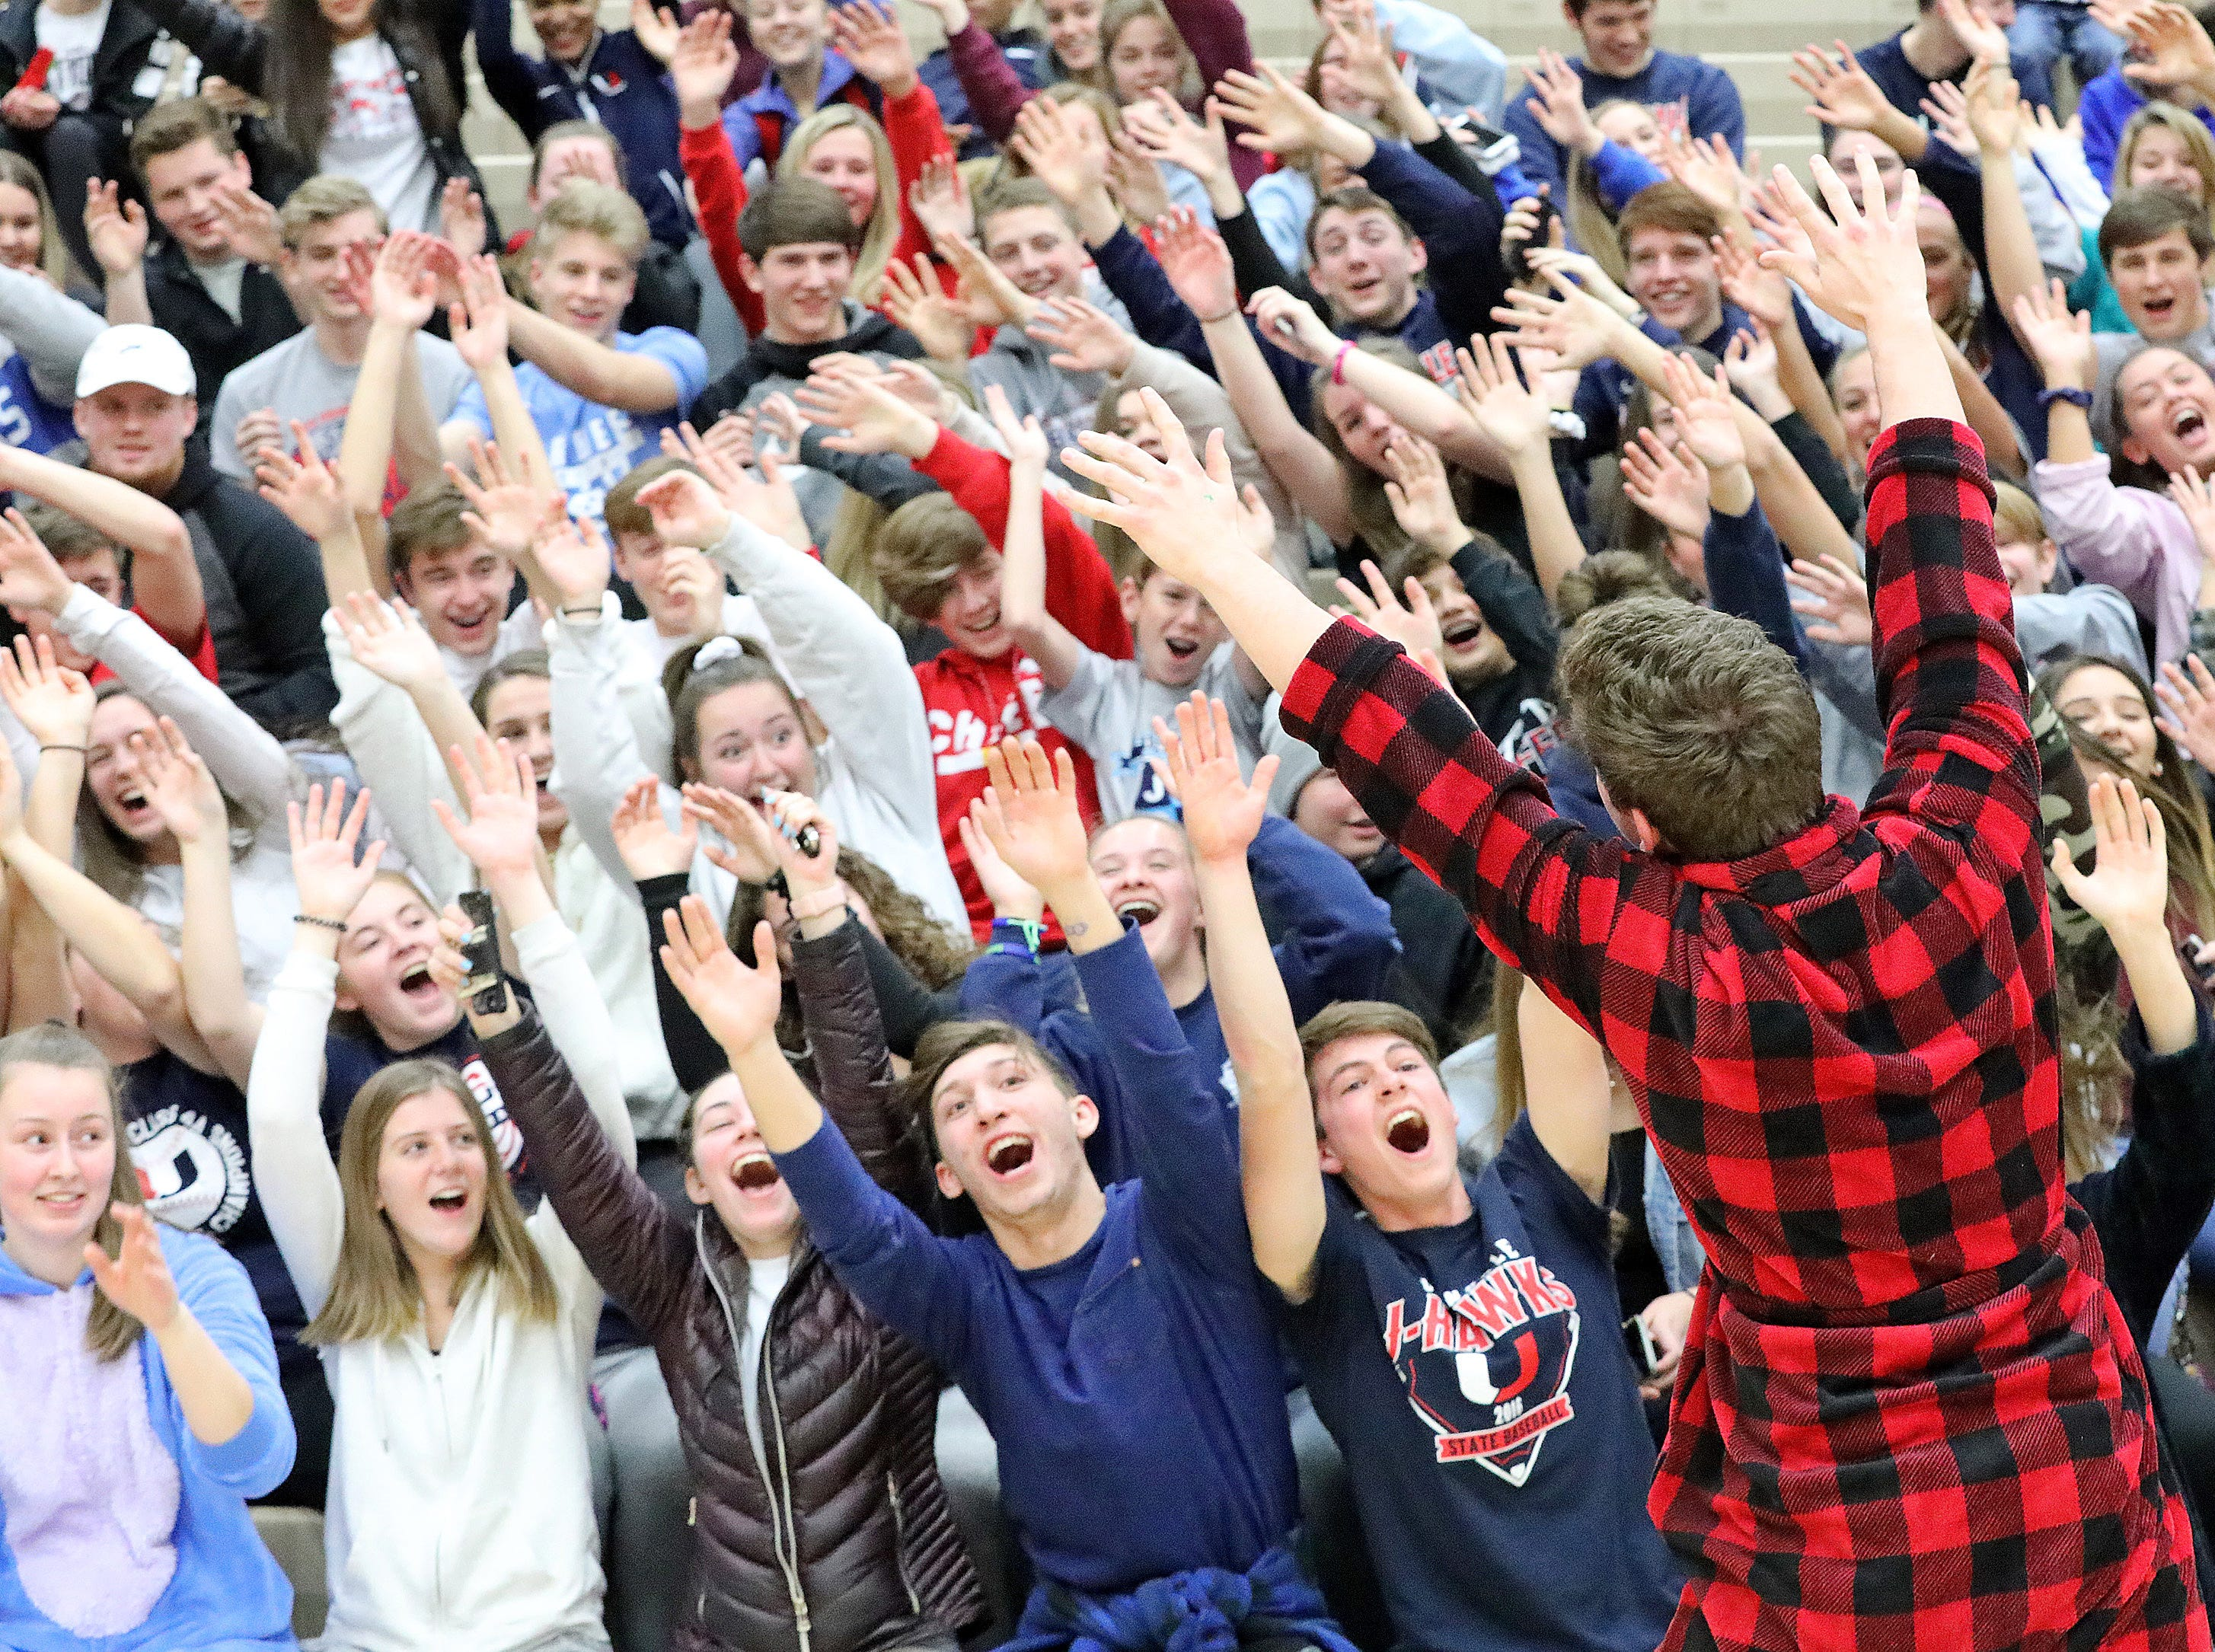 Urbandale senior Evan Smith and his red flannel bath robe fire up the students to the right as the Ankeny Hawks compete against the Urbandale J-Hawks in high school basketball on Friday, Dec. 14, 2018 at Urbandale High School. Ankeny won 62 to 52 to remain undefeated at 6-0.